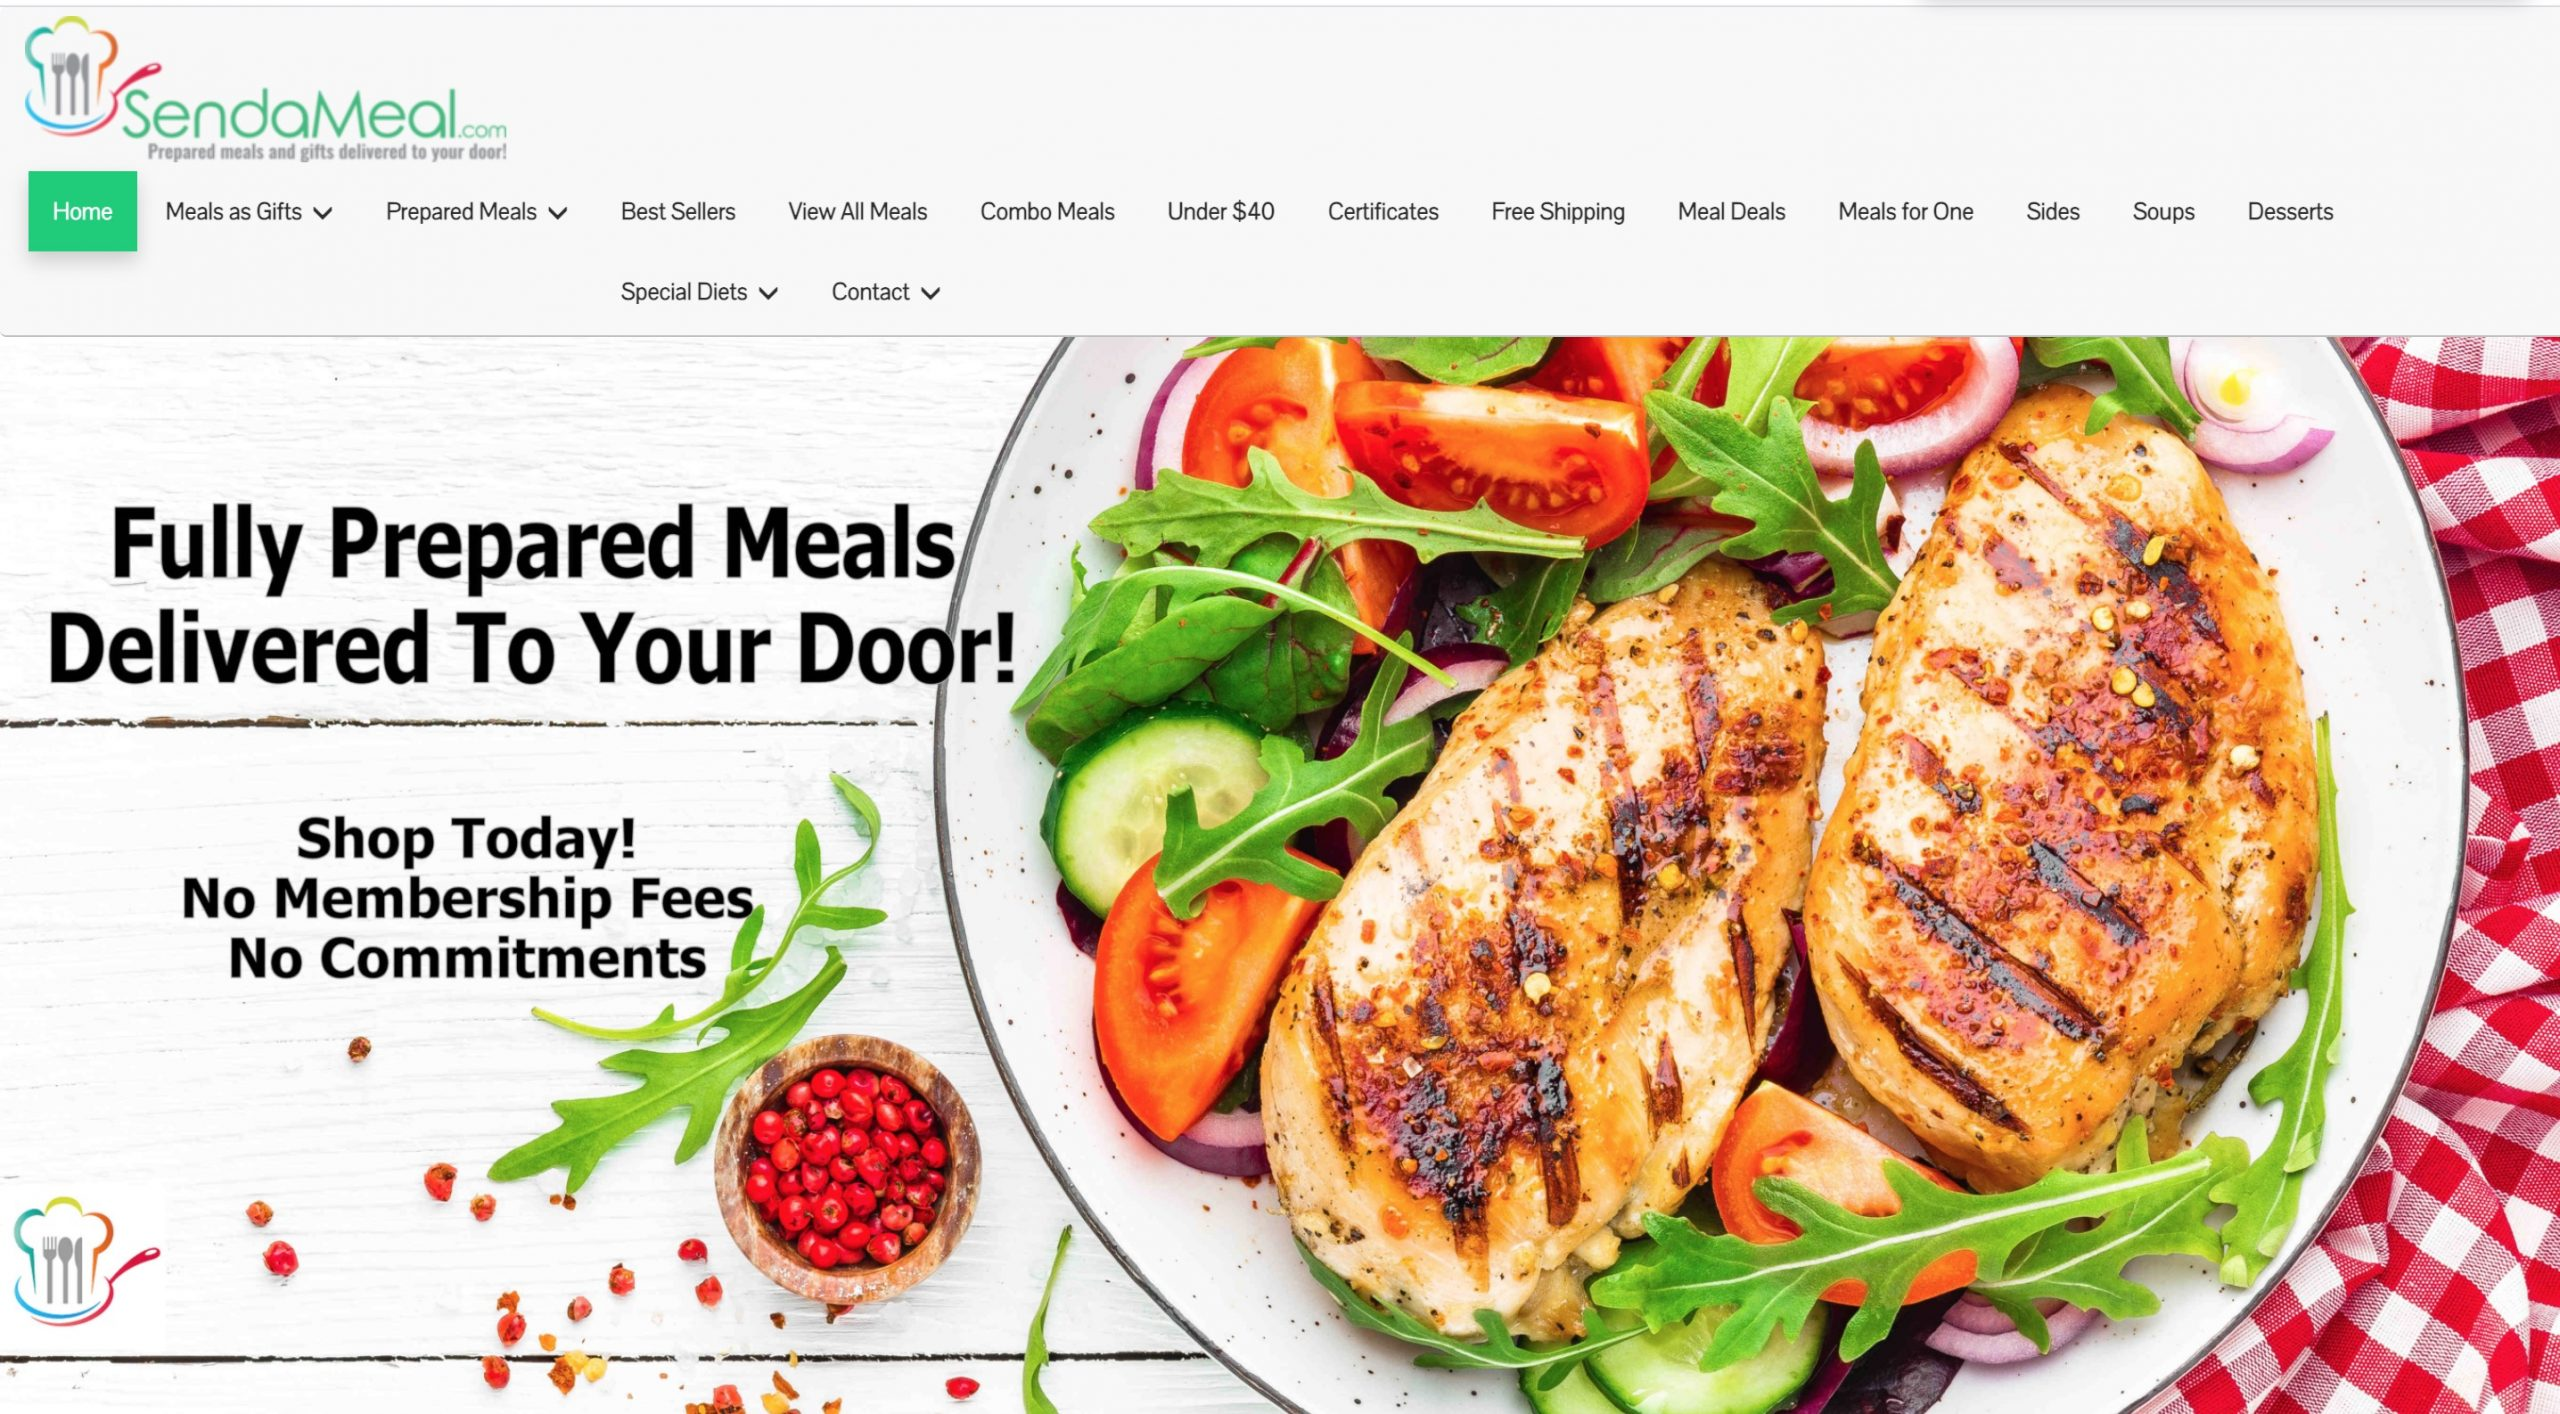 Send a Meal main page